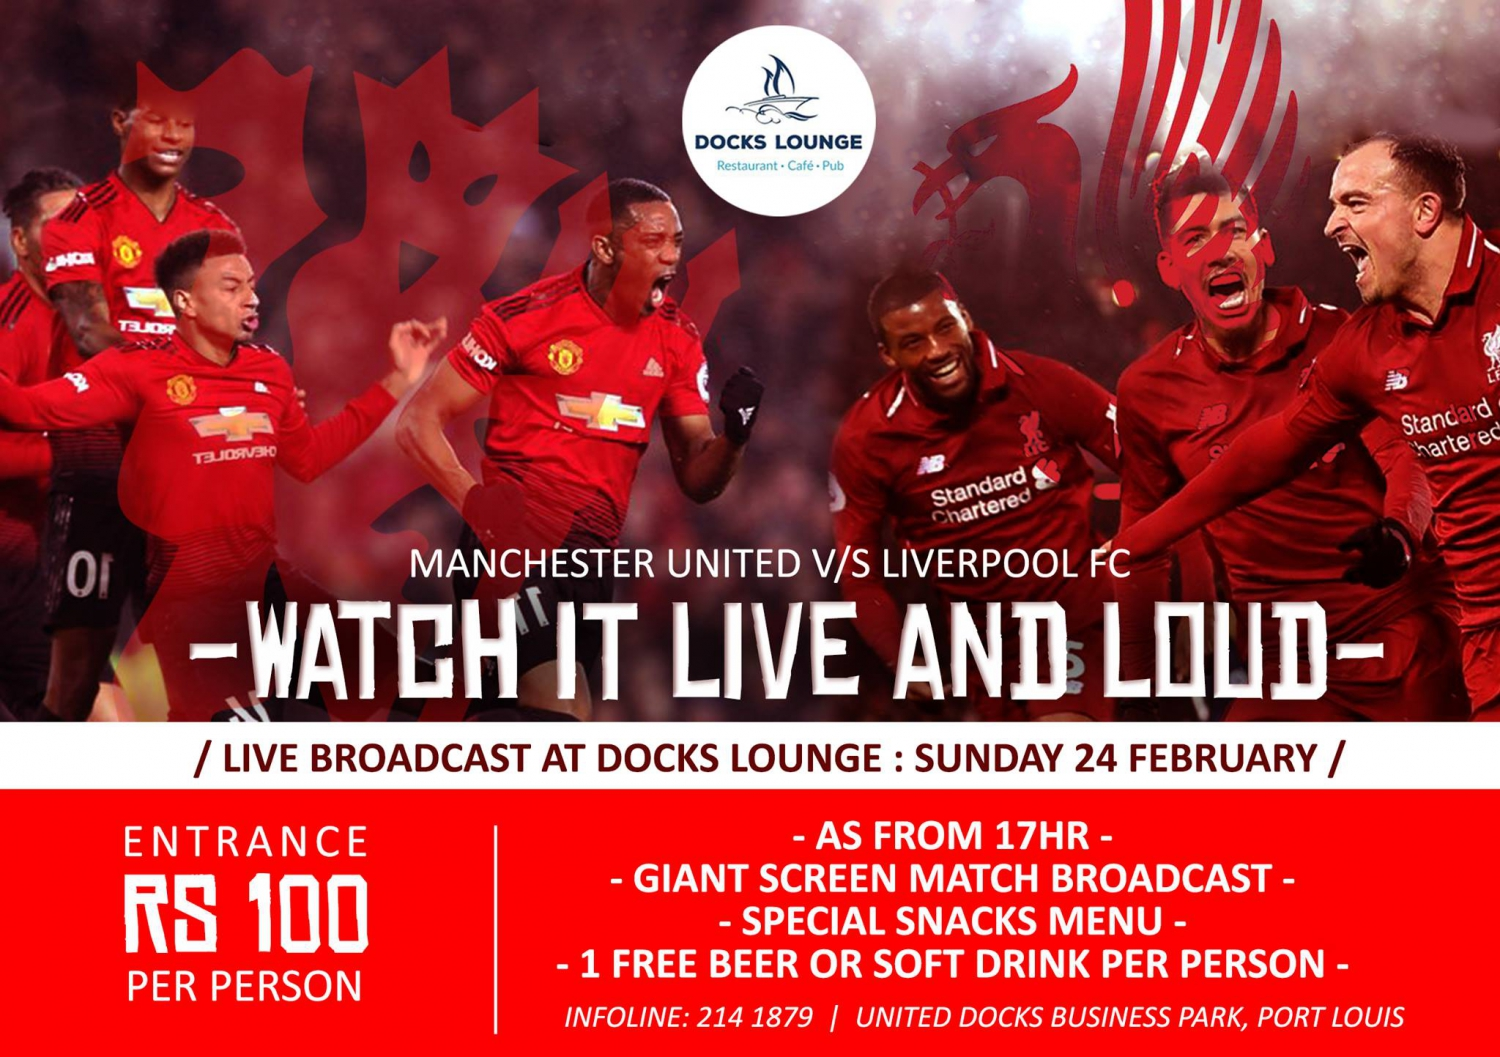 Manchester United v/s Liverpool at Docks Lounge